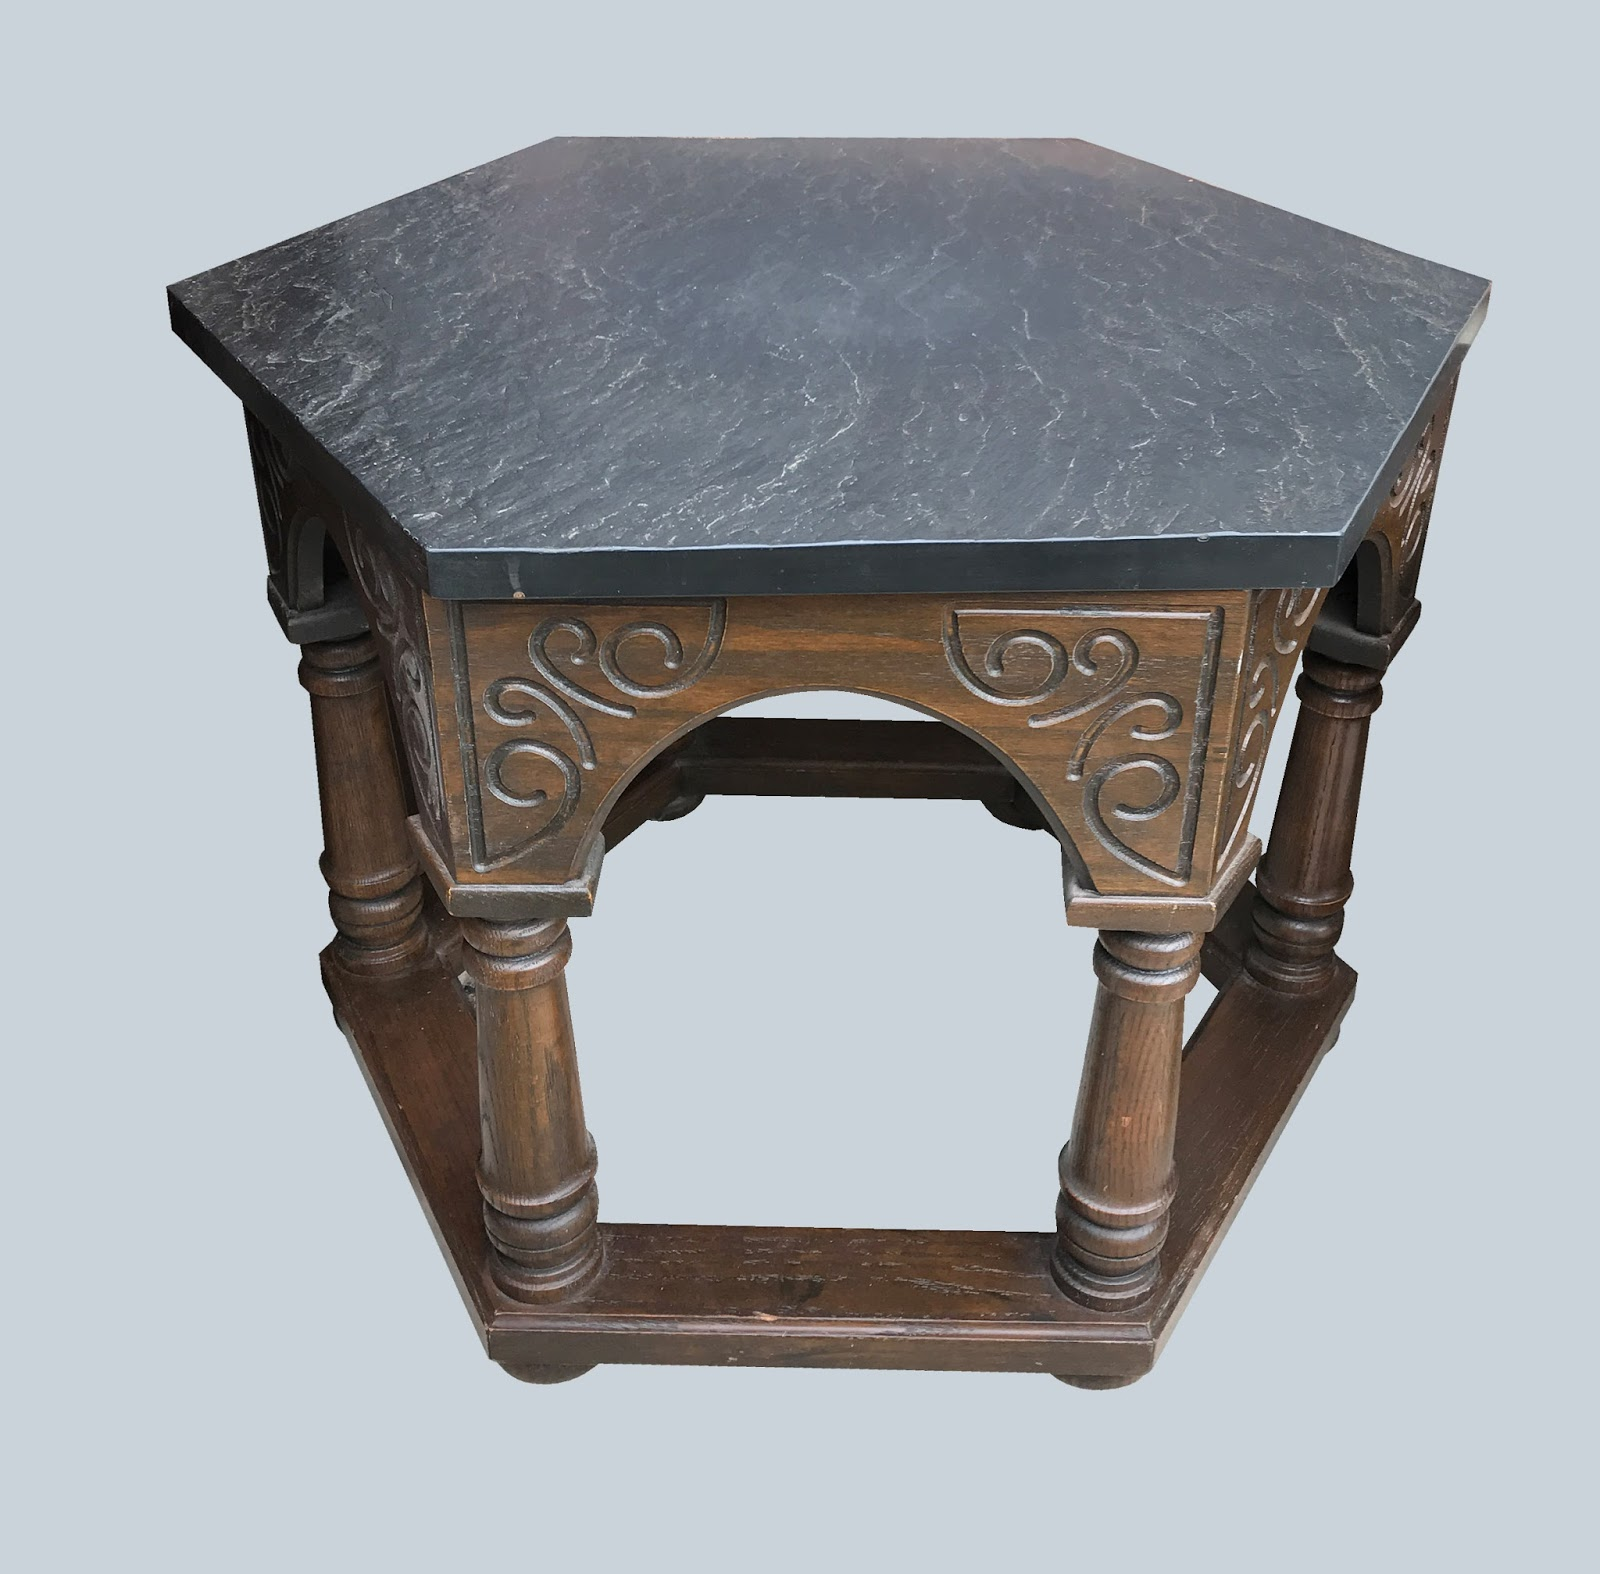 Uhuru Furniture & Collectibles: Gothic Coffee Table - $55 SOLD